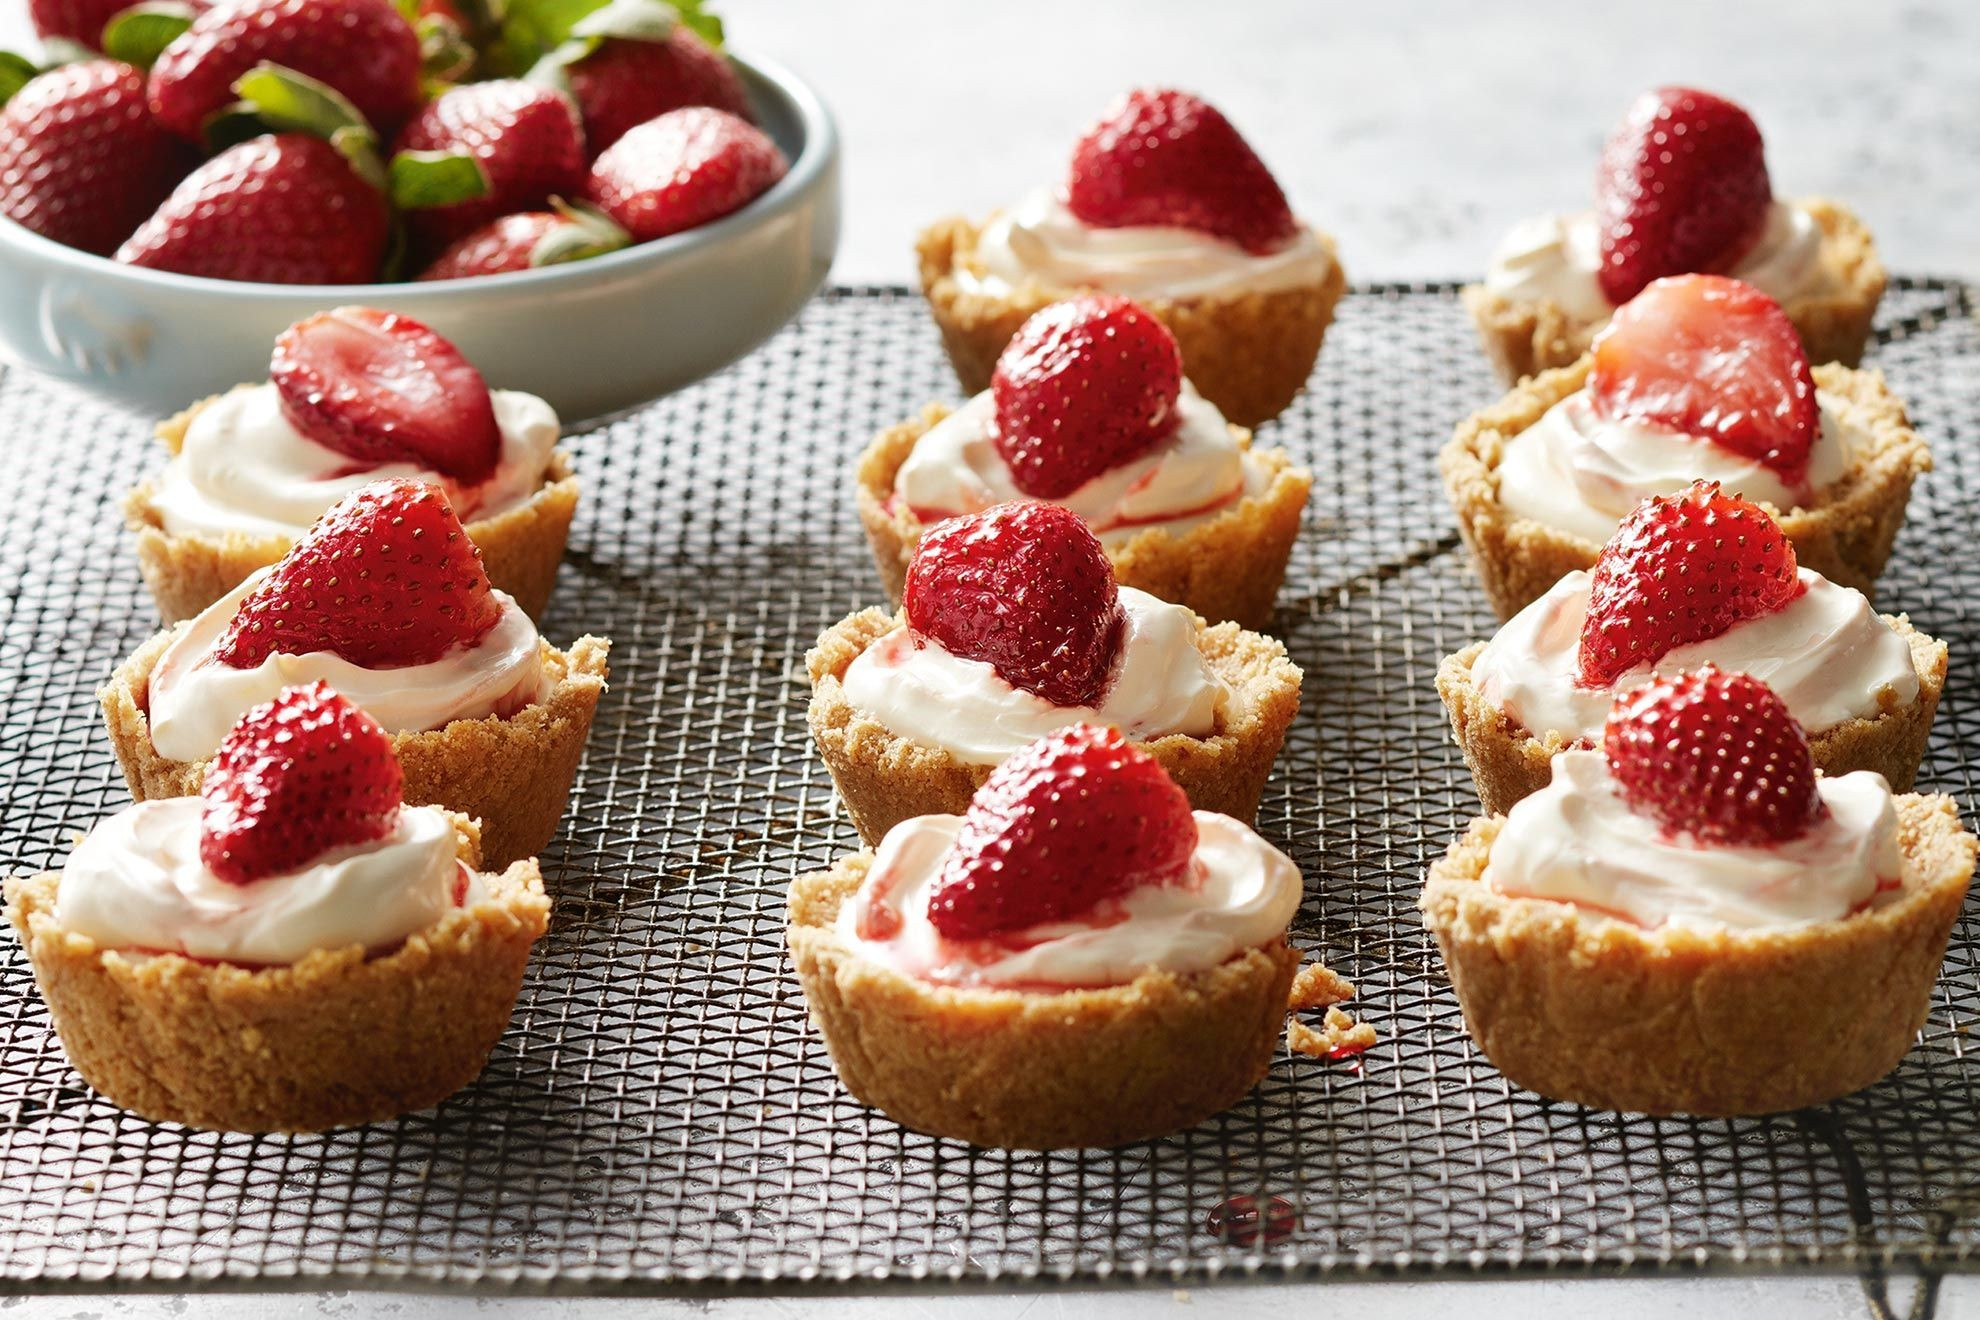 Mini no-bake cheesecakes with strawberries